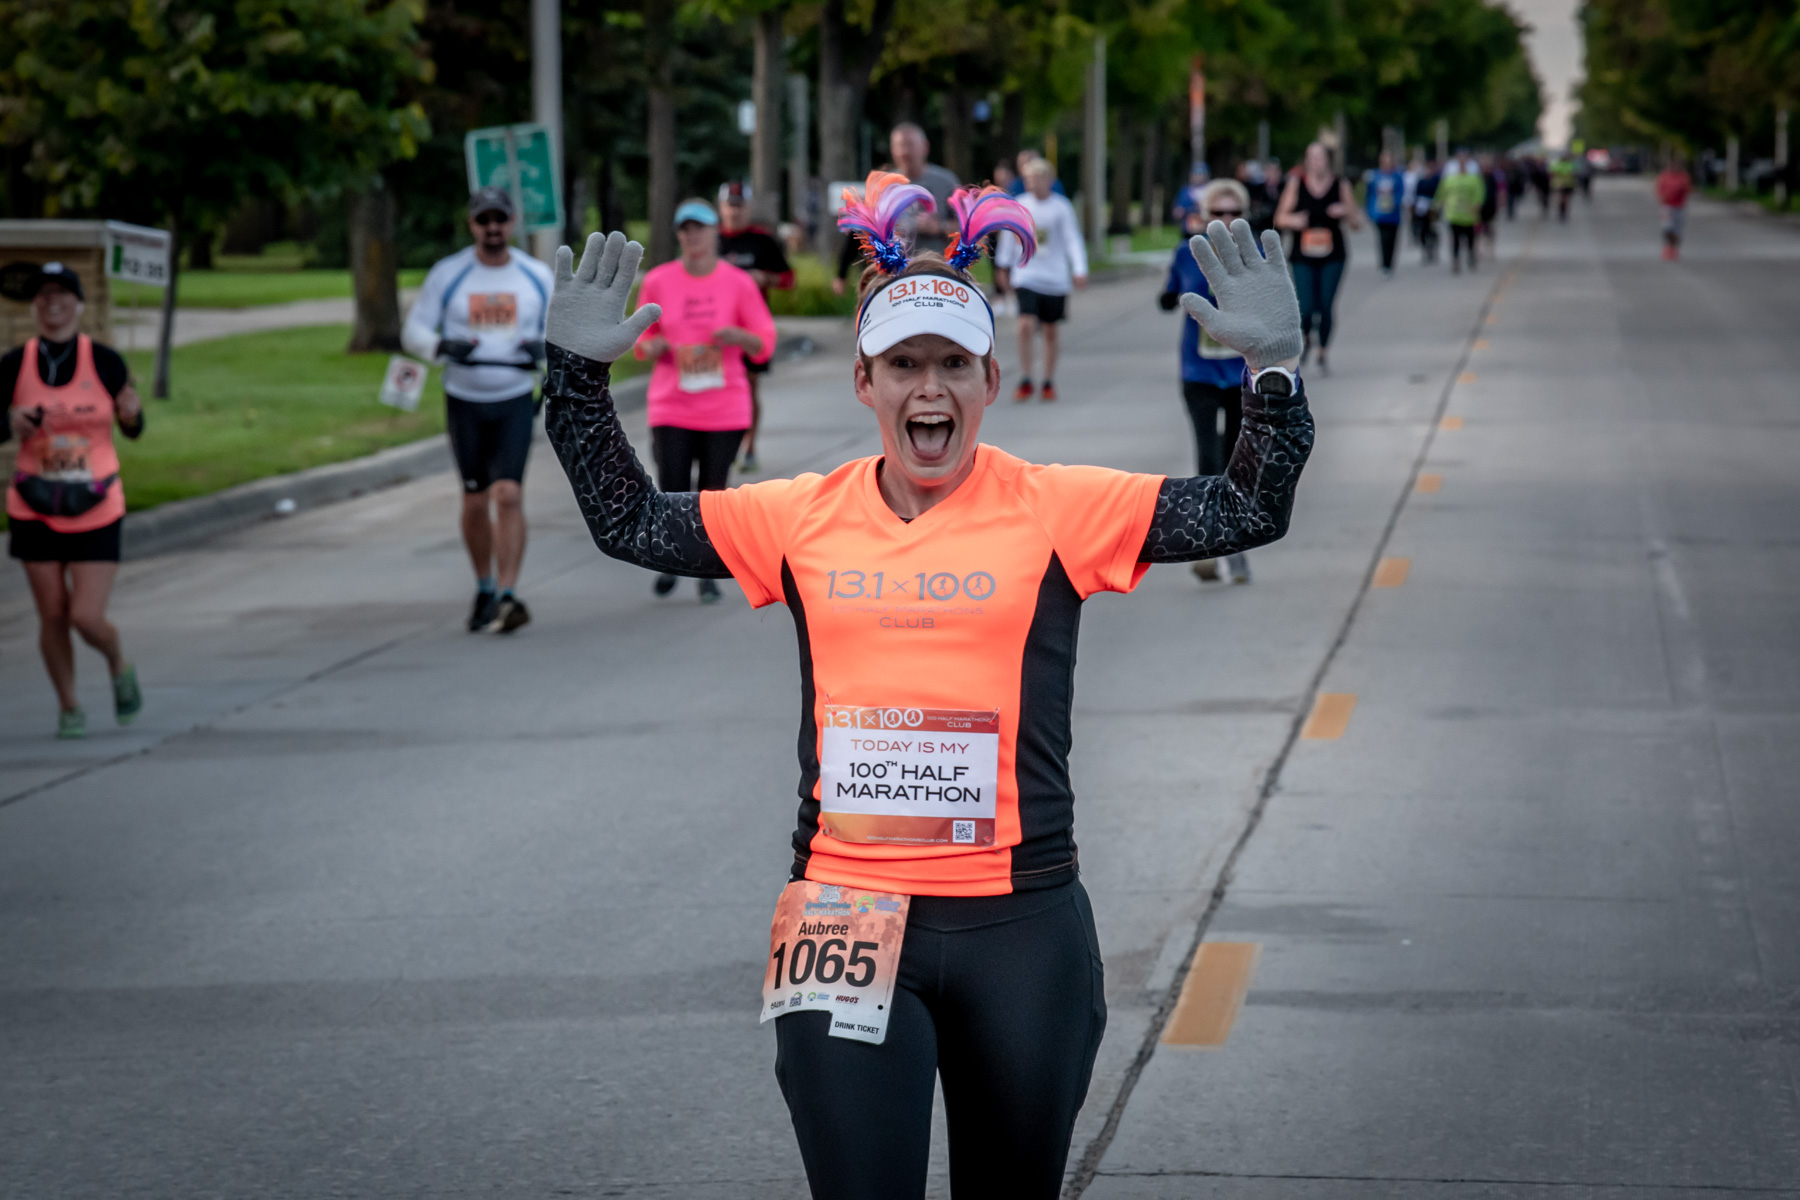 2020 — 2020 Grand Forks Marathon Weekend — Race Roster Within 2021 Floridapick 3 Results Calendar